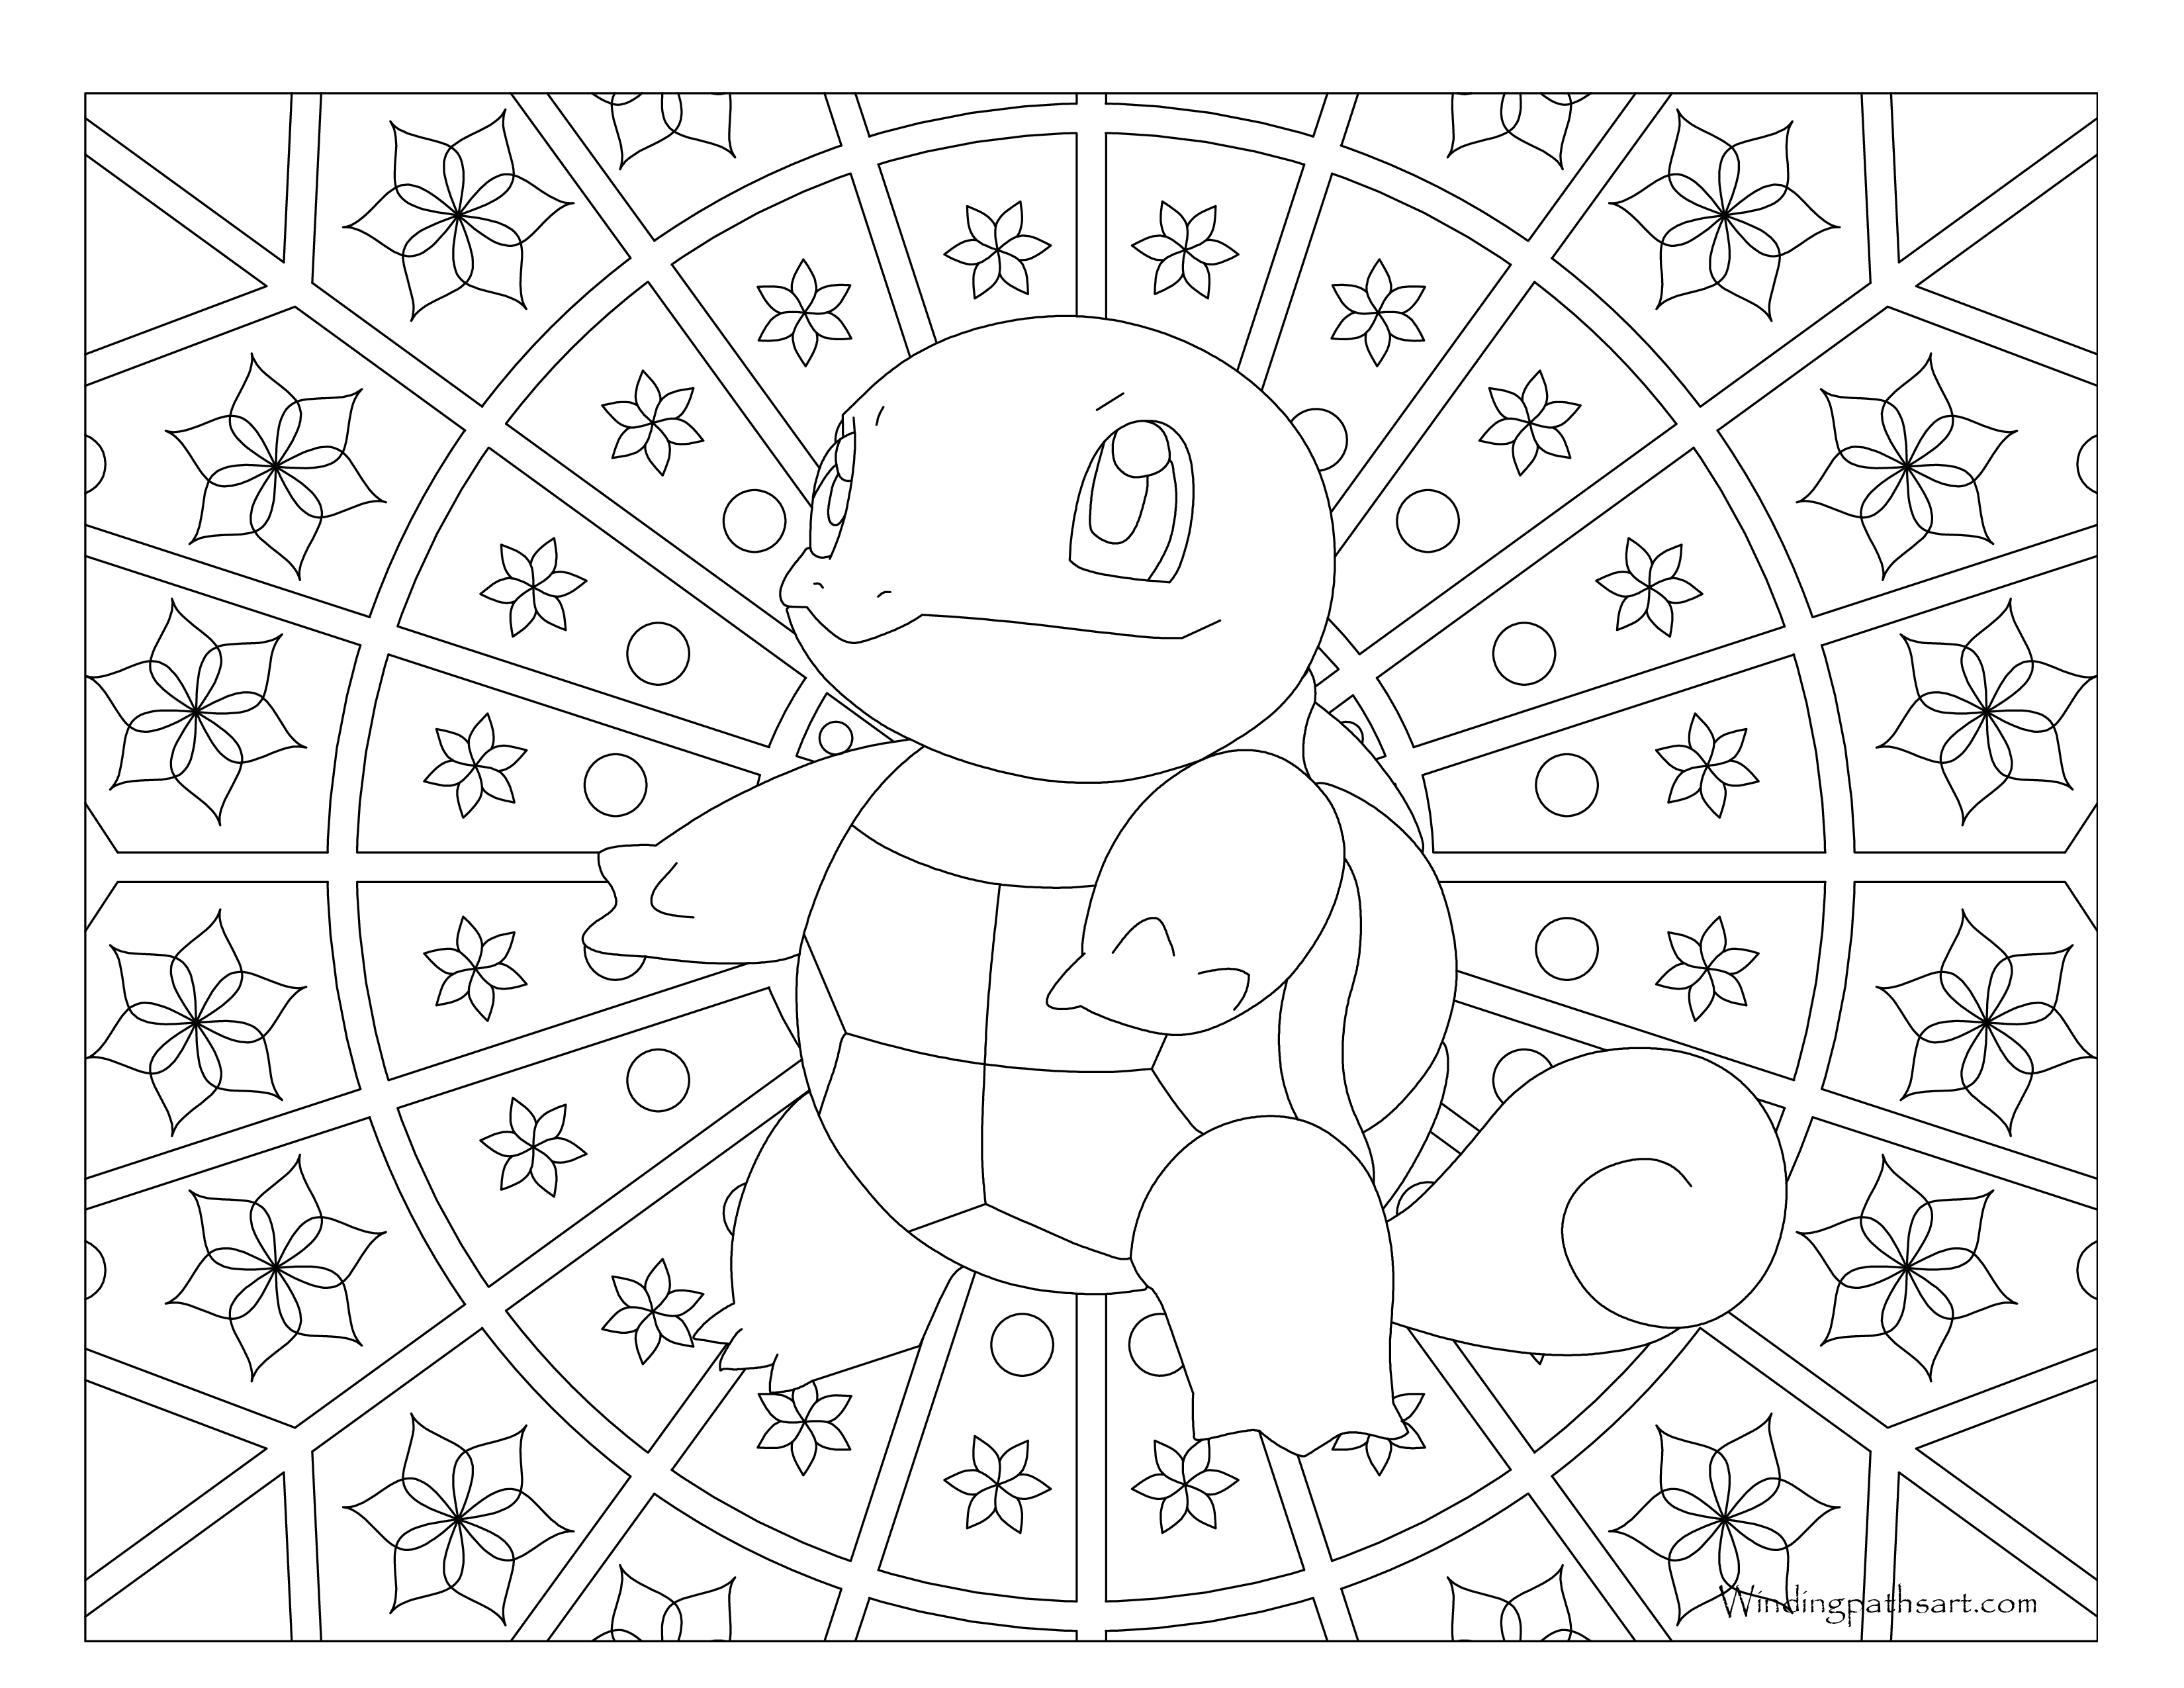 007 Squirtle Pokemon Coloring Page Windingpathsart Com